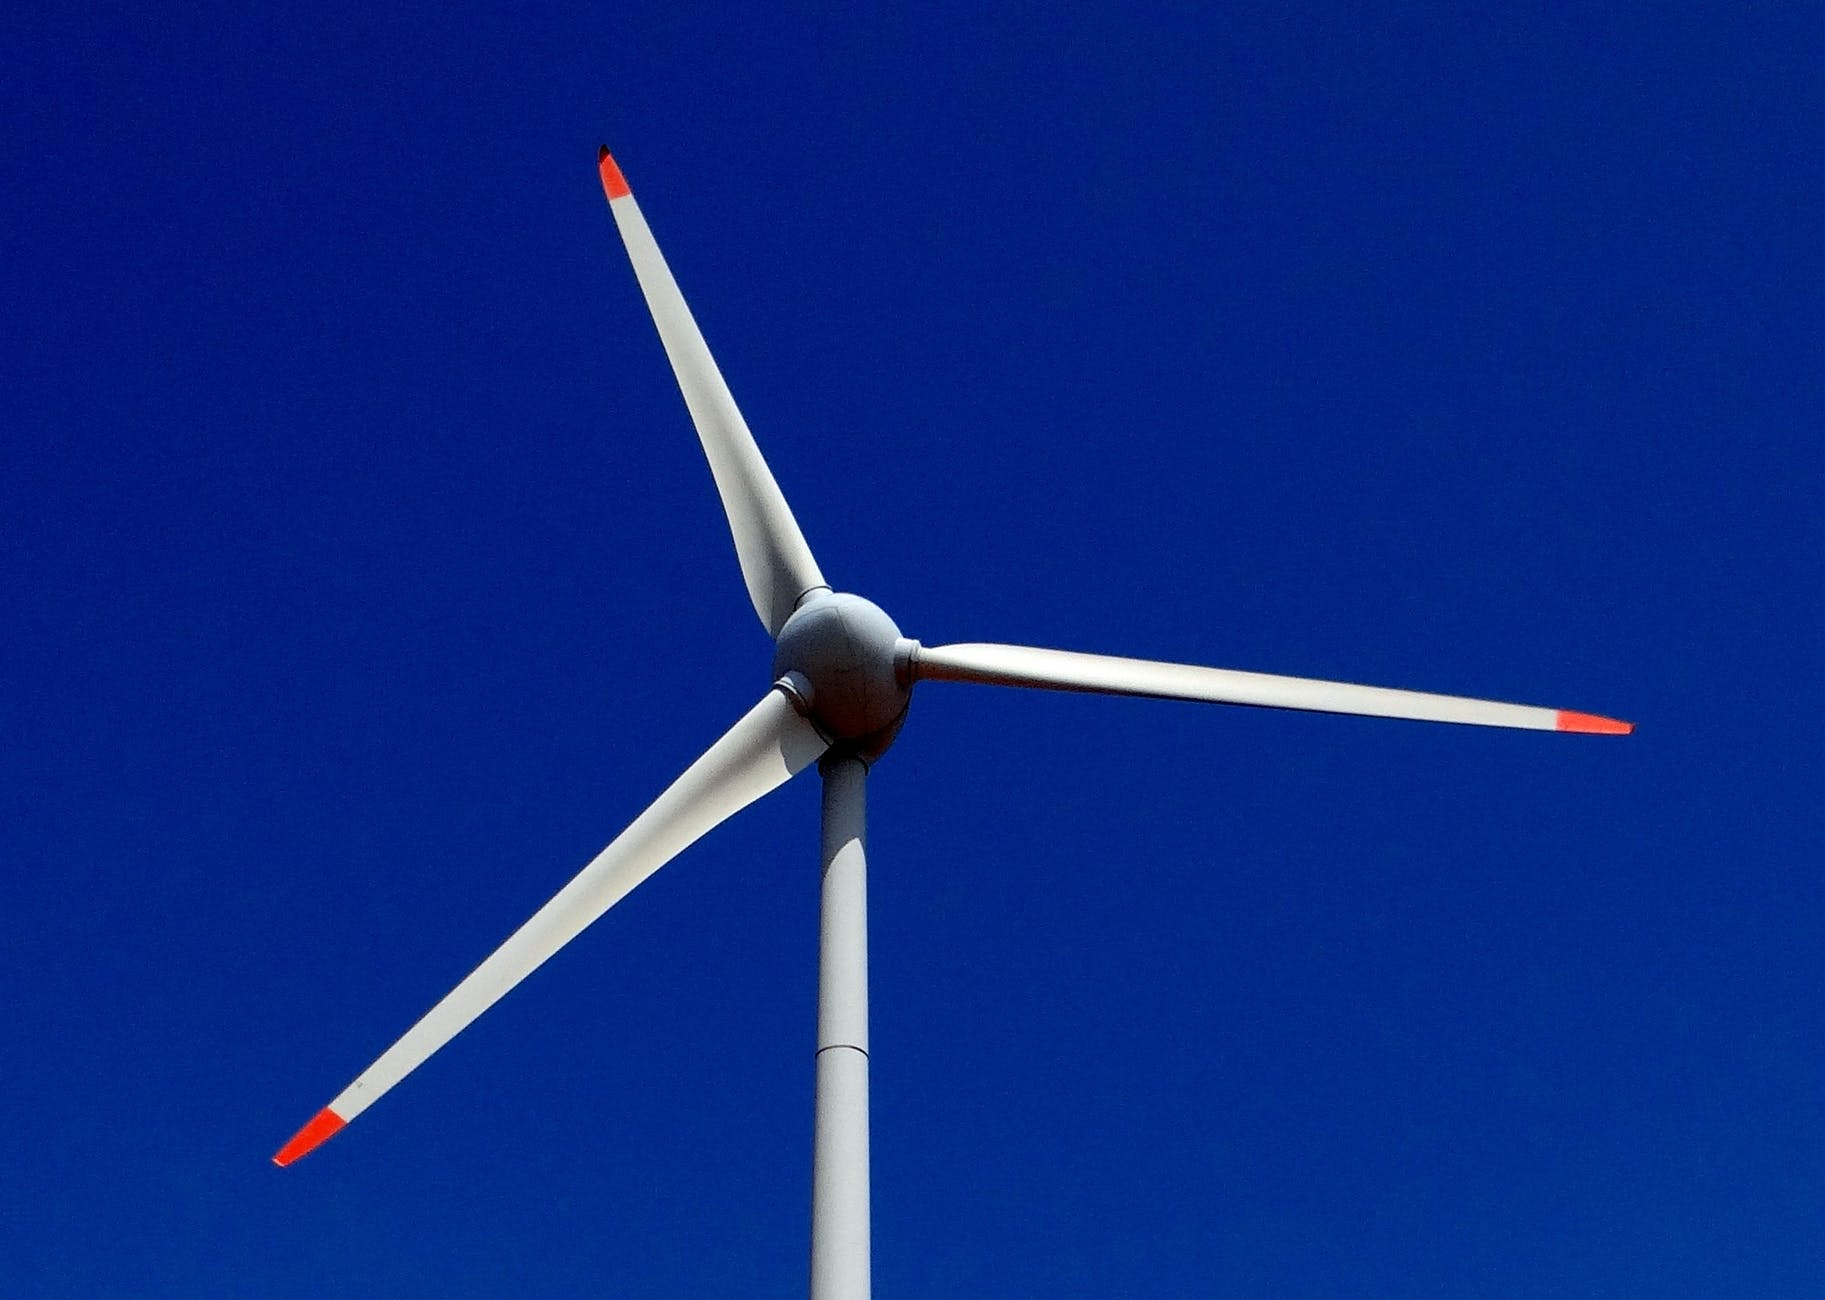 wind-turbine-nargund-hill-wind-power-59959.jpeg